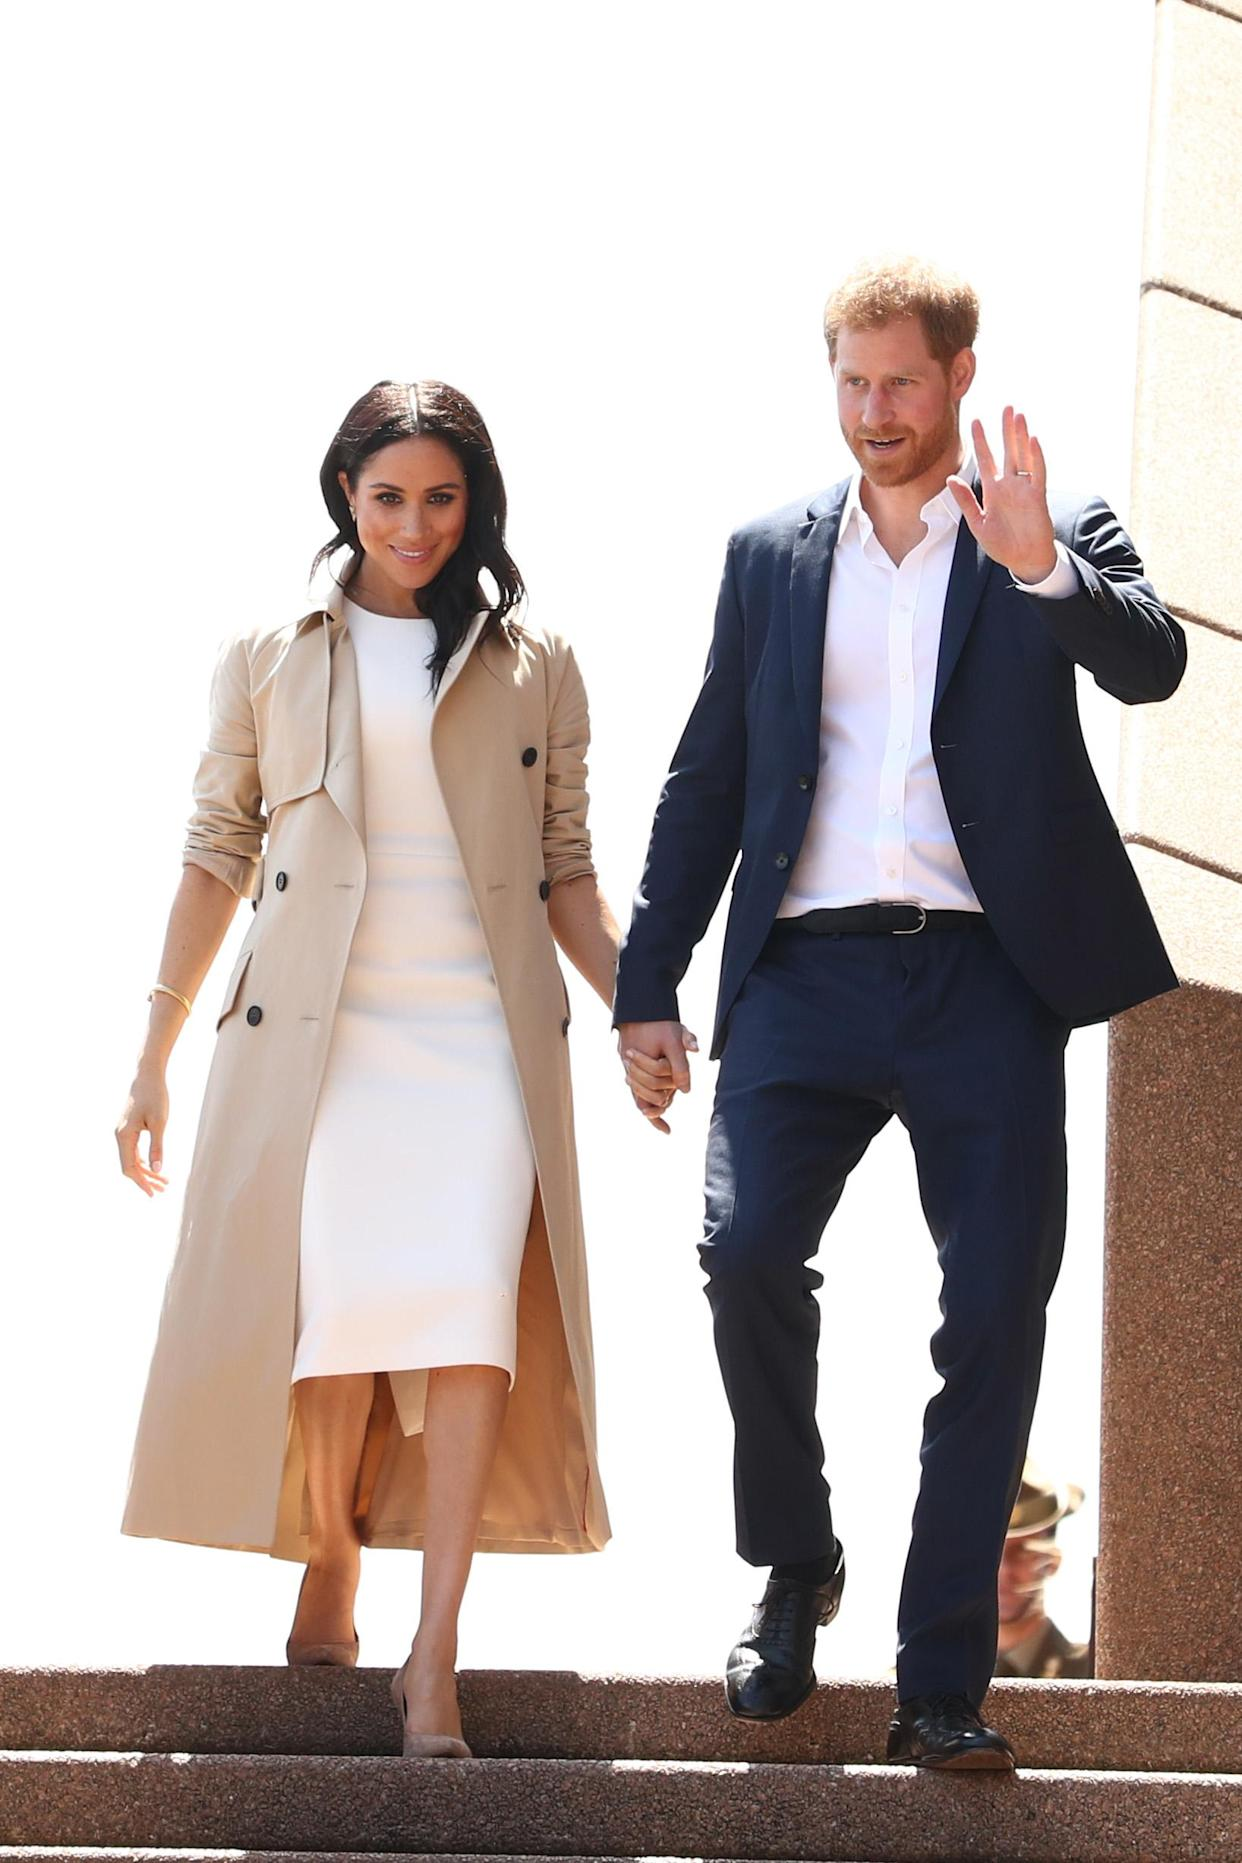 The couple held hands as they came down the stairs of the Sydney Opera House. Source: Getty